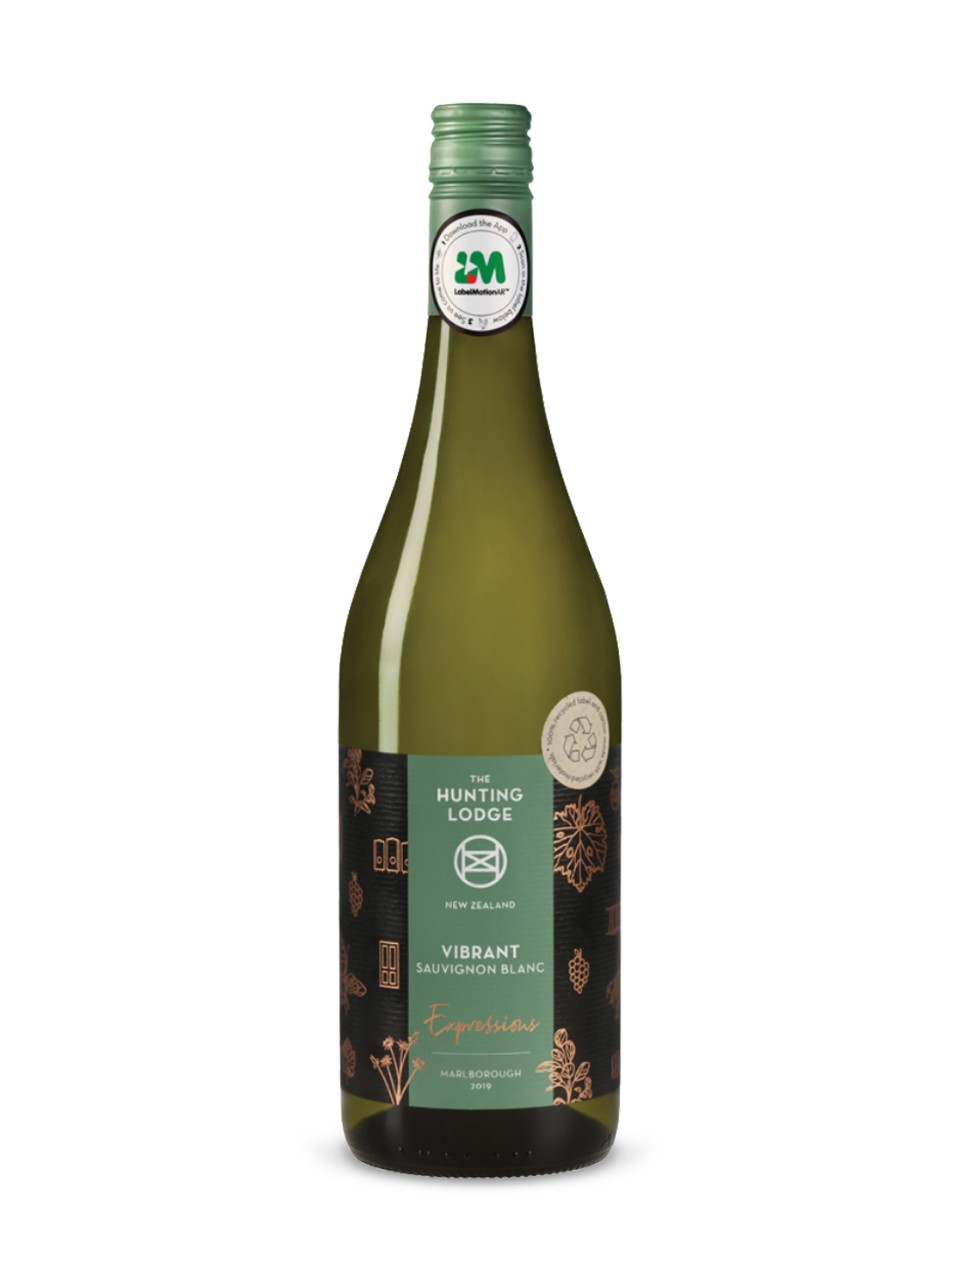 The Hunting Lodge Expressions Sauvignon Blanc 2019 from LCBO